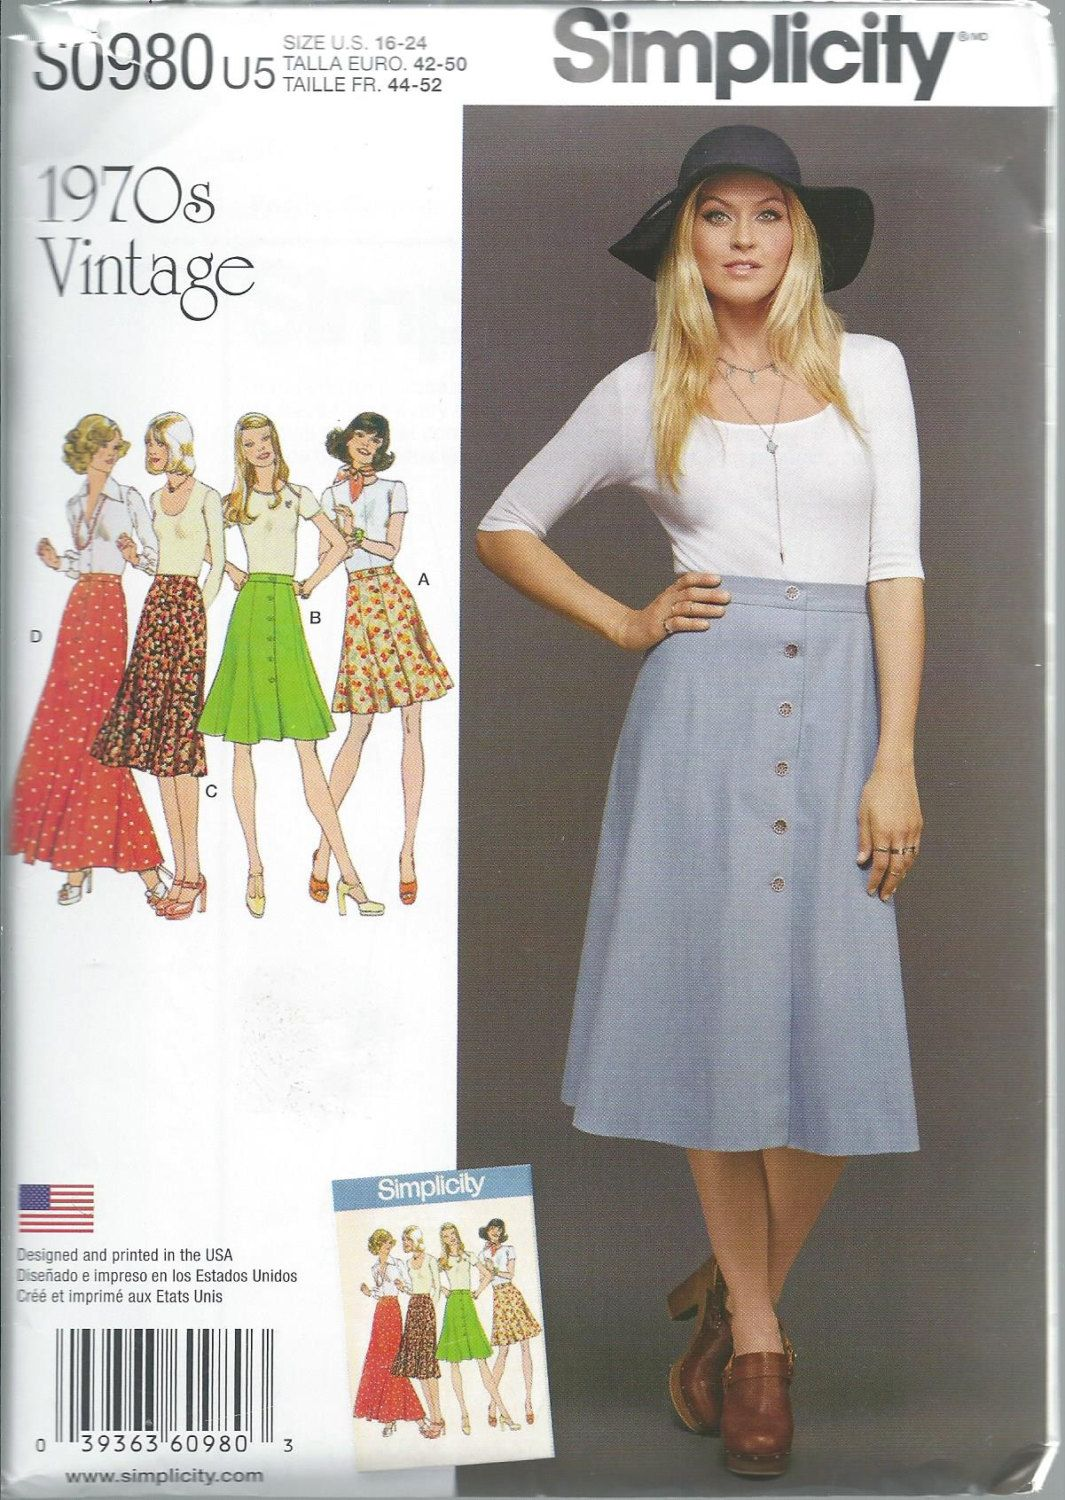 Simplicity 8142, Misses, Skirts, Gored Skirt, S0980, Miss, Maxi ...